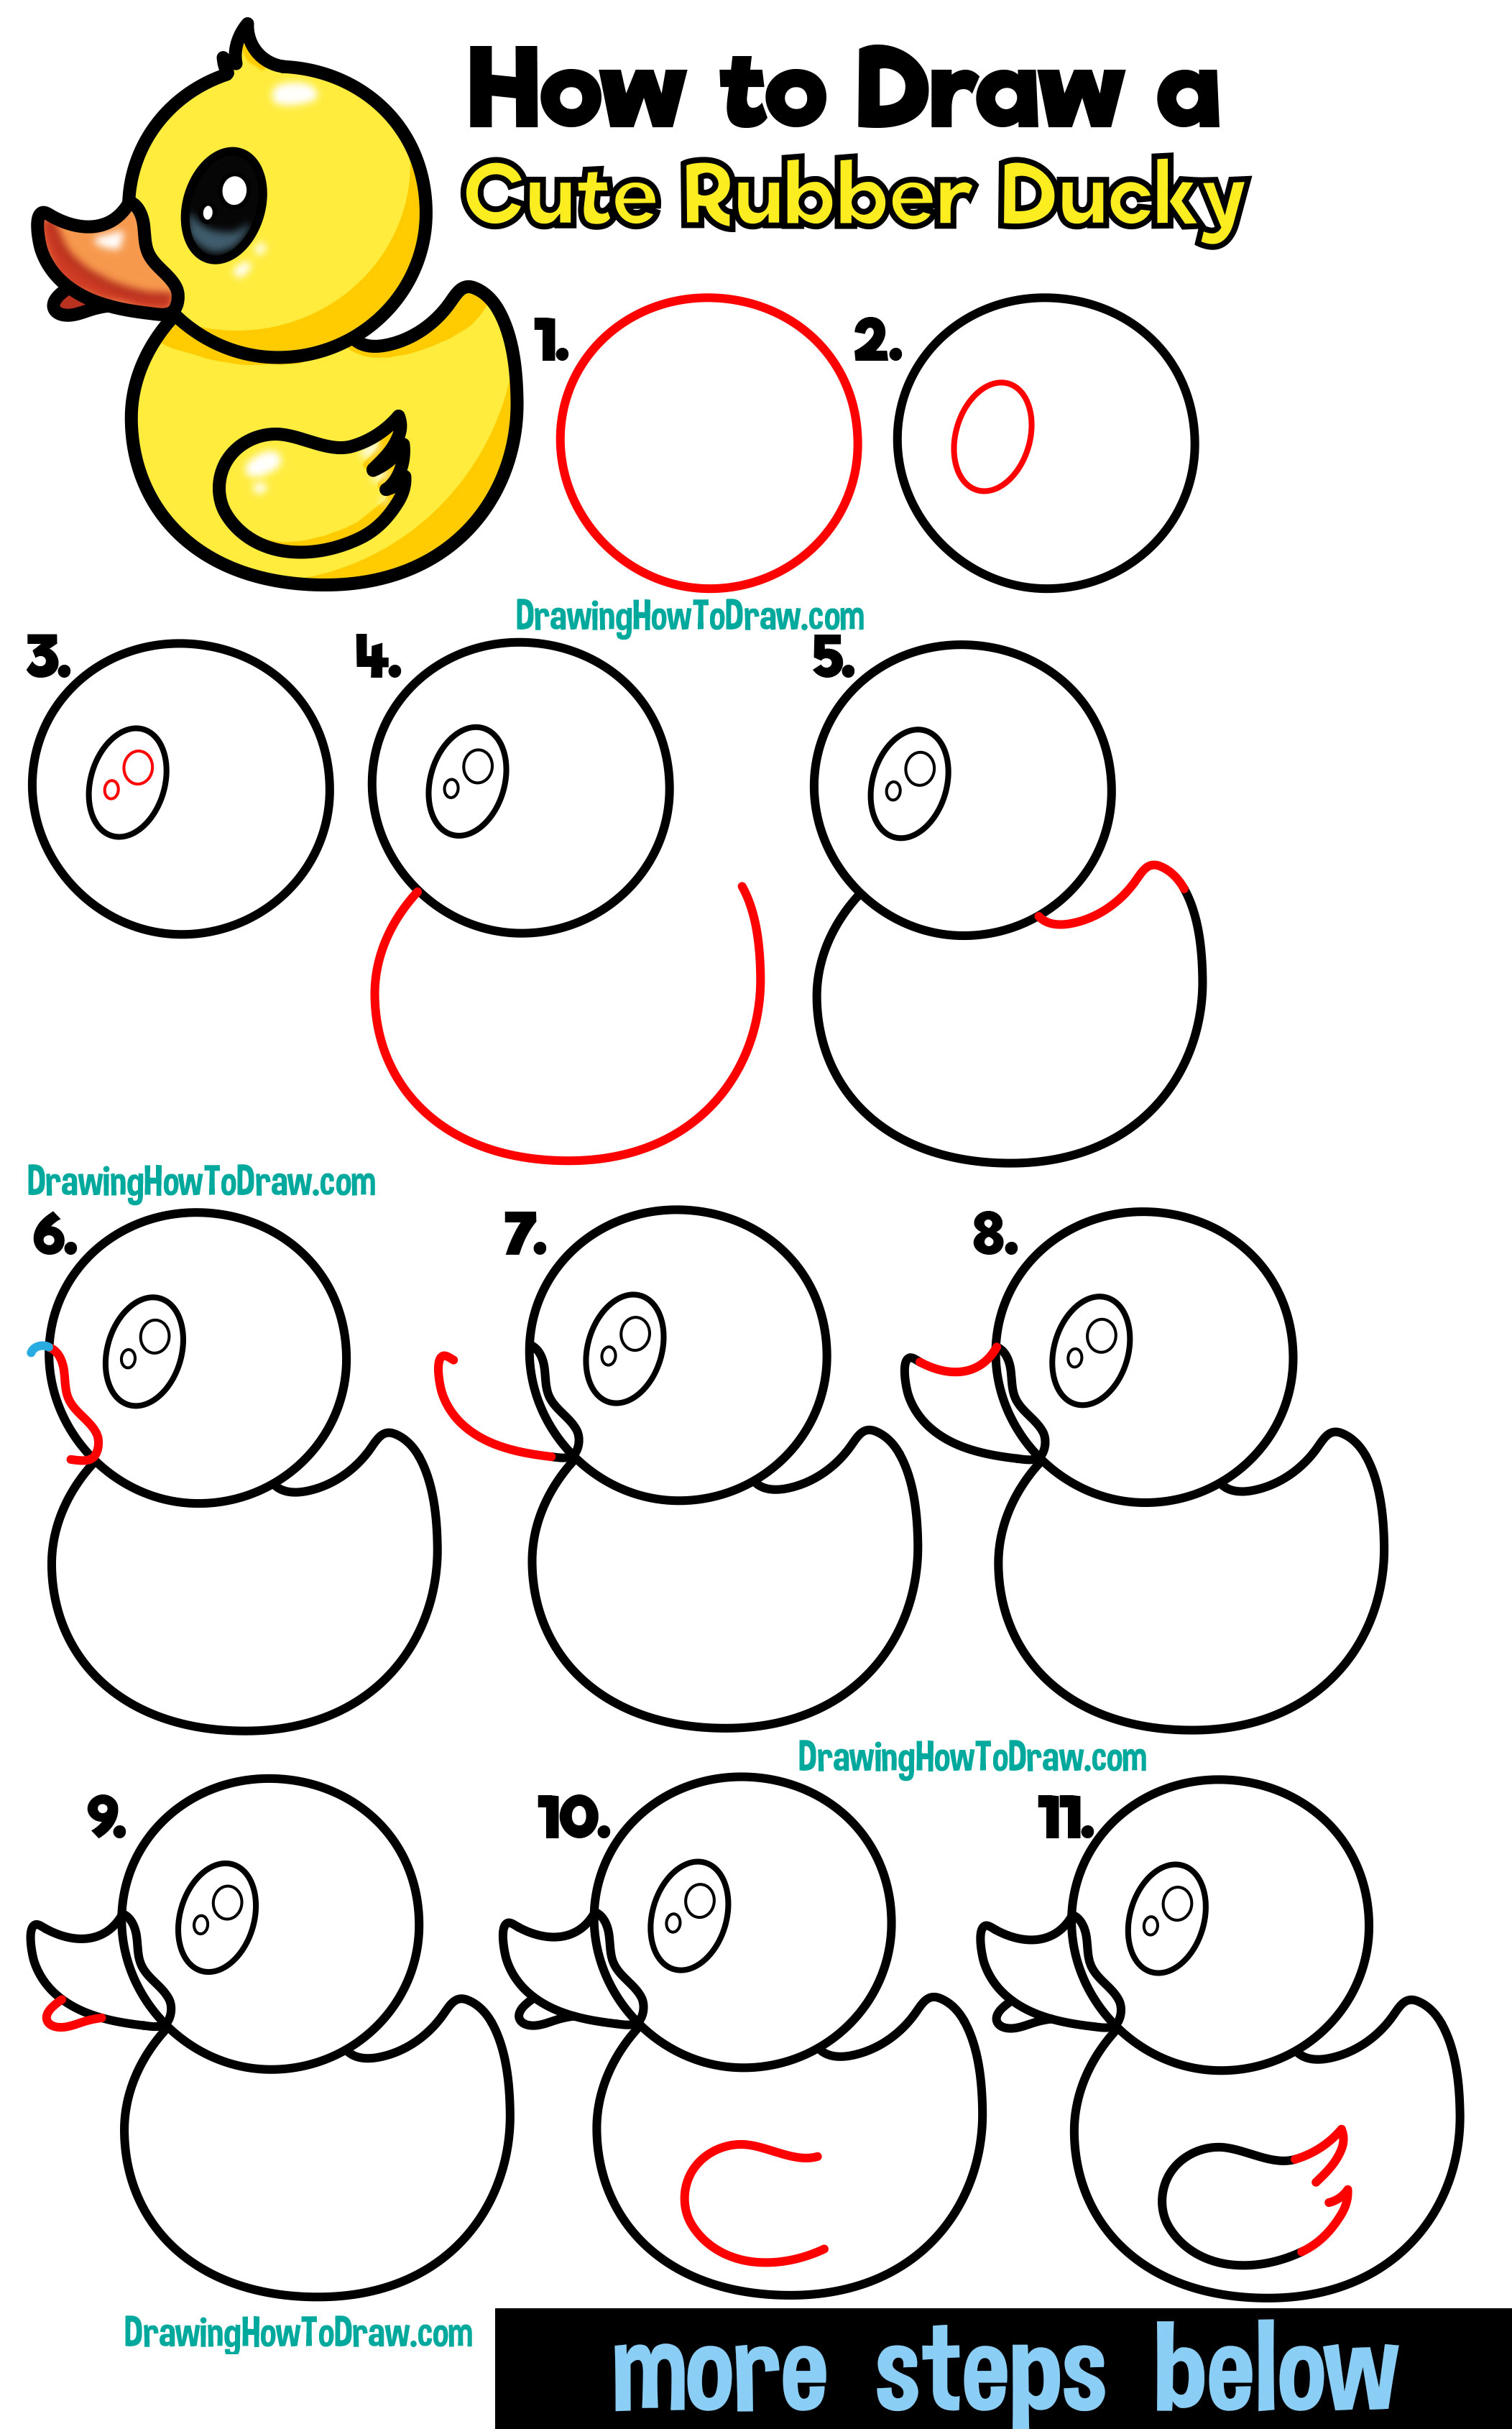 How To Draw A Cute Cartoon Rubber Ducky Easy Step By Step Drawing